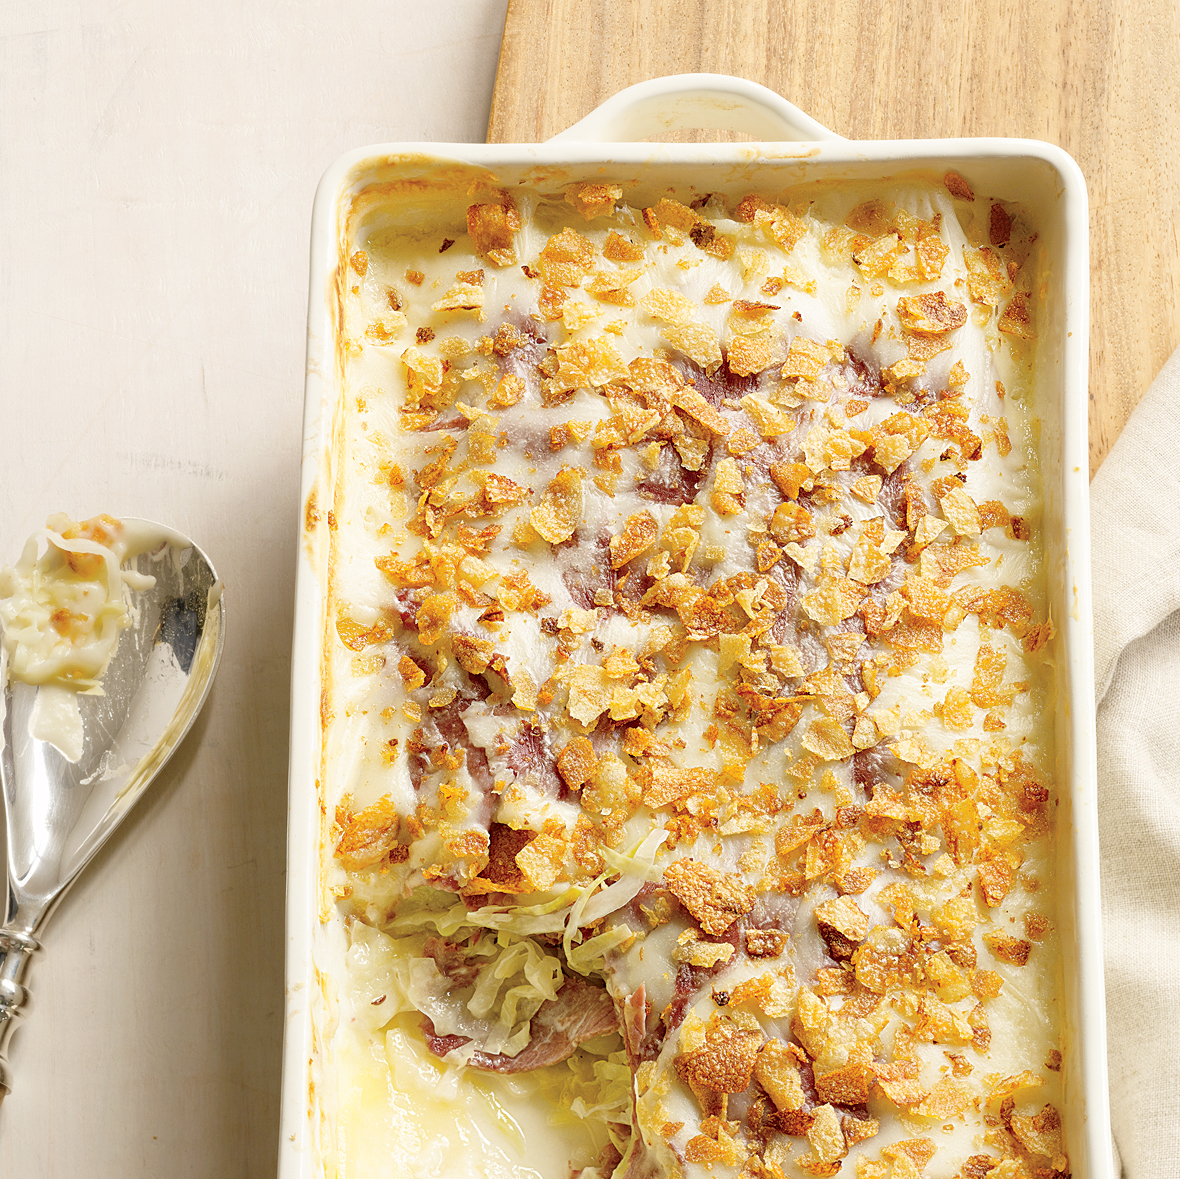 Scalloped Corned Beef and Cabbage